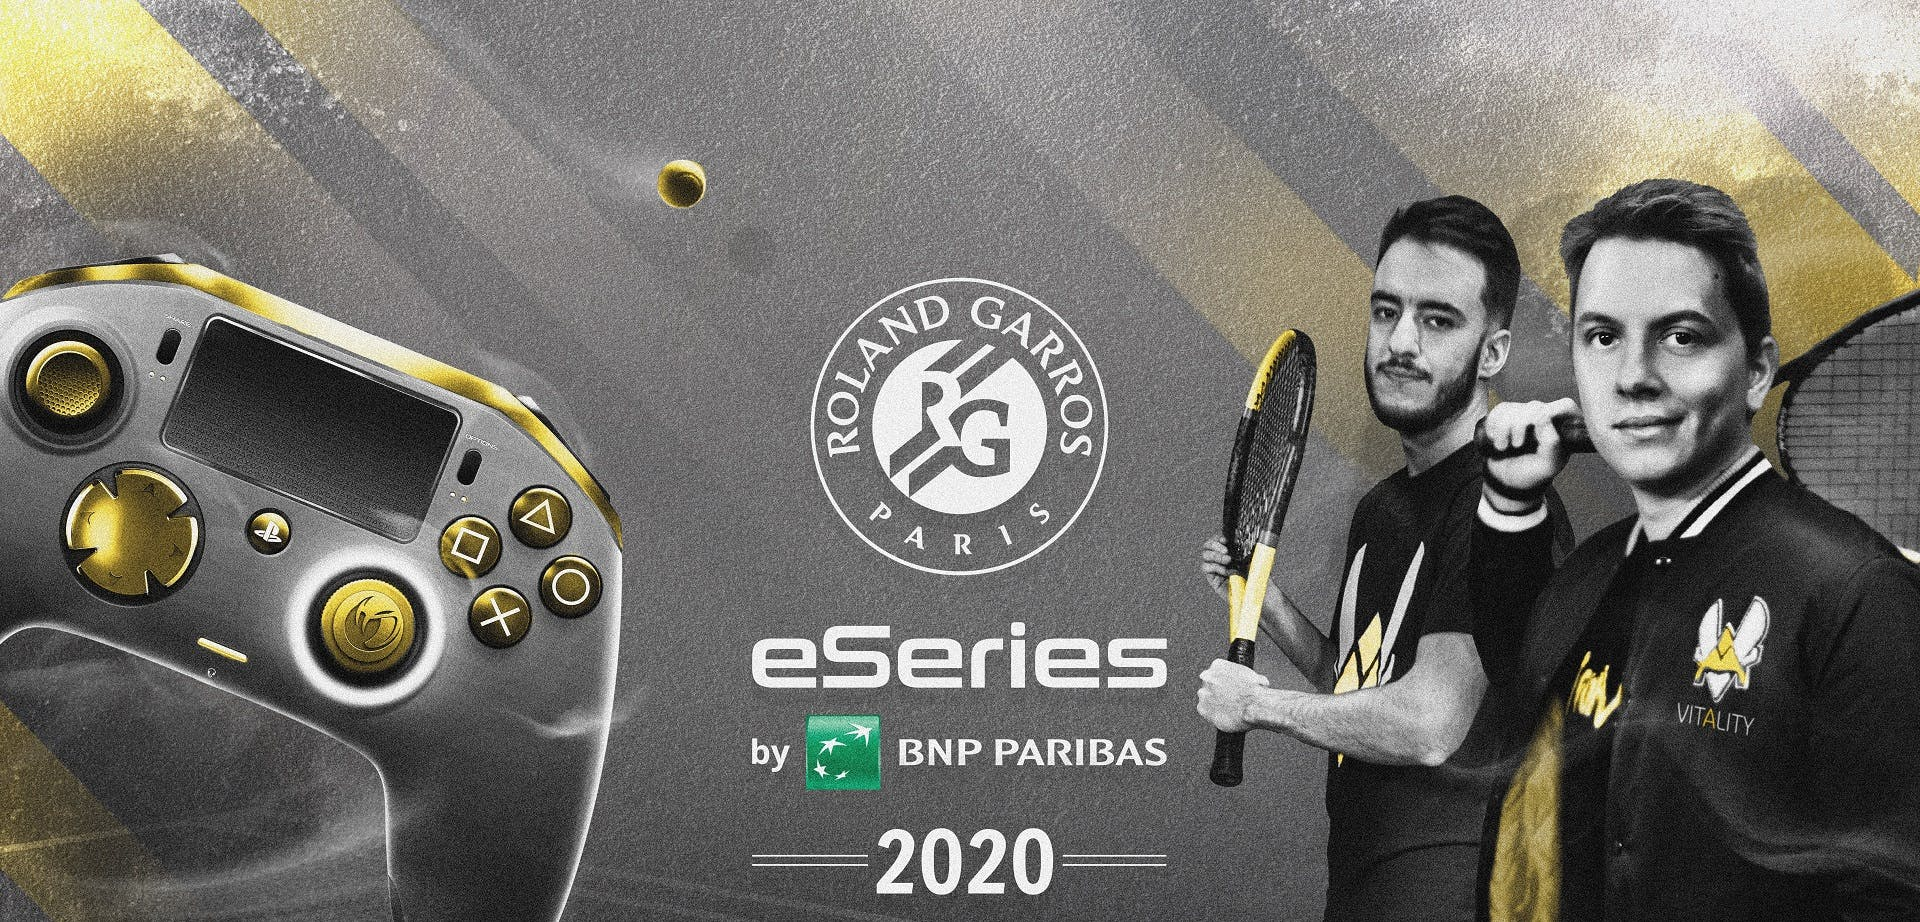 RG eSeries by BNP Paribas 2020 Team Vitality